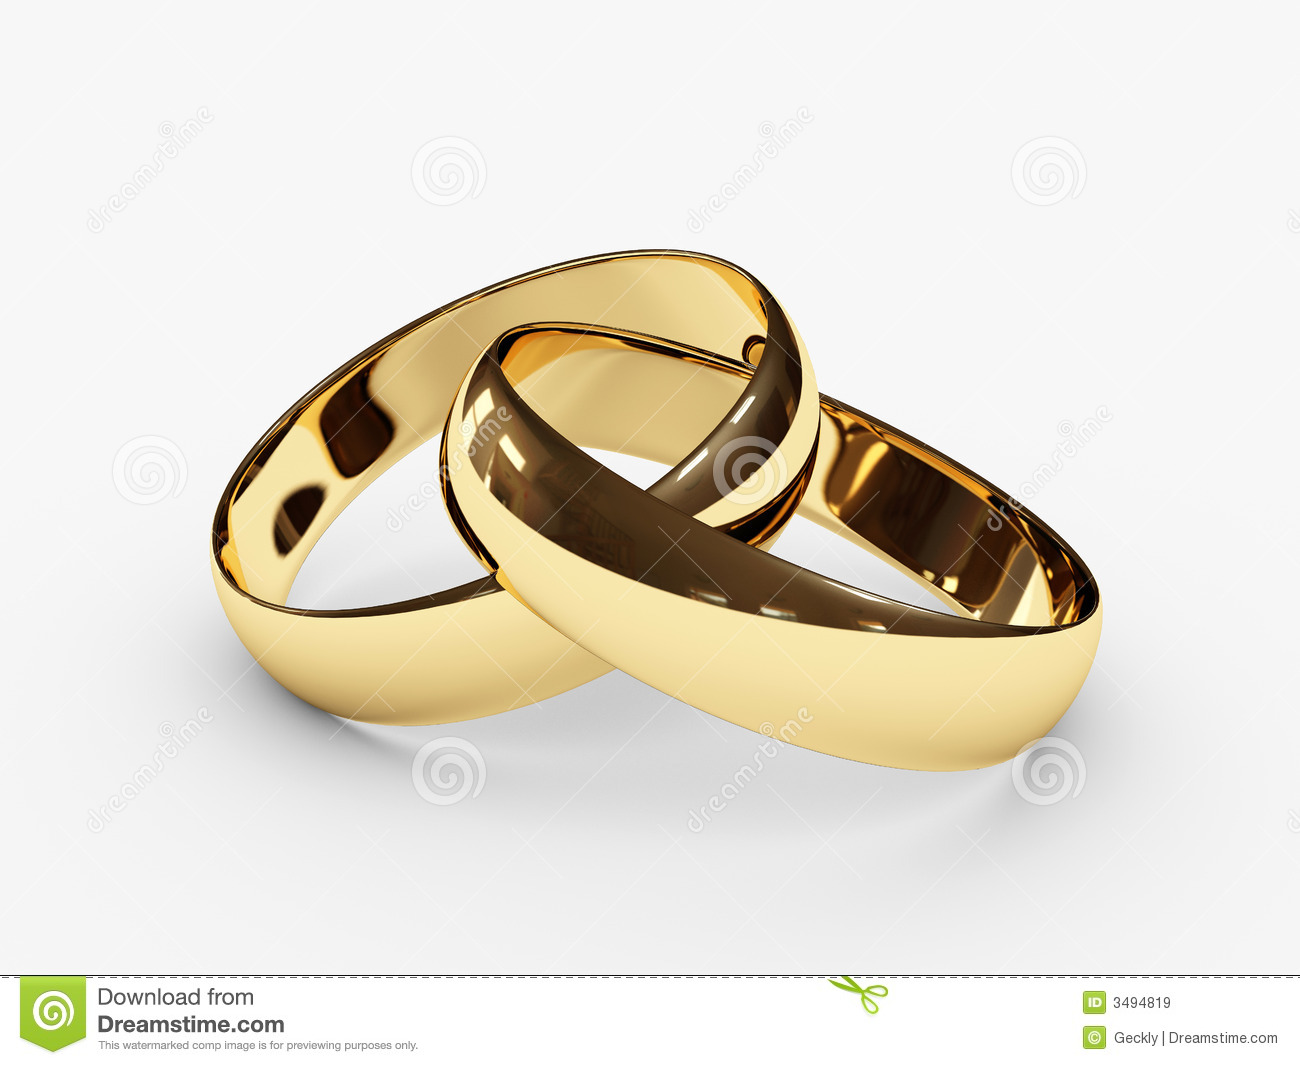 Connected wedding rings stock illustration Illustration of shine